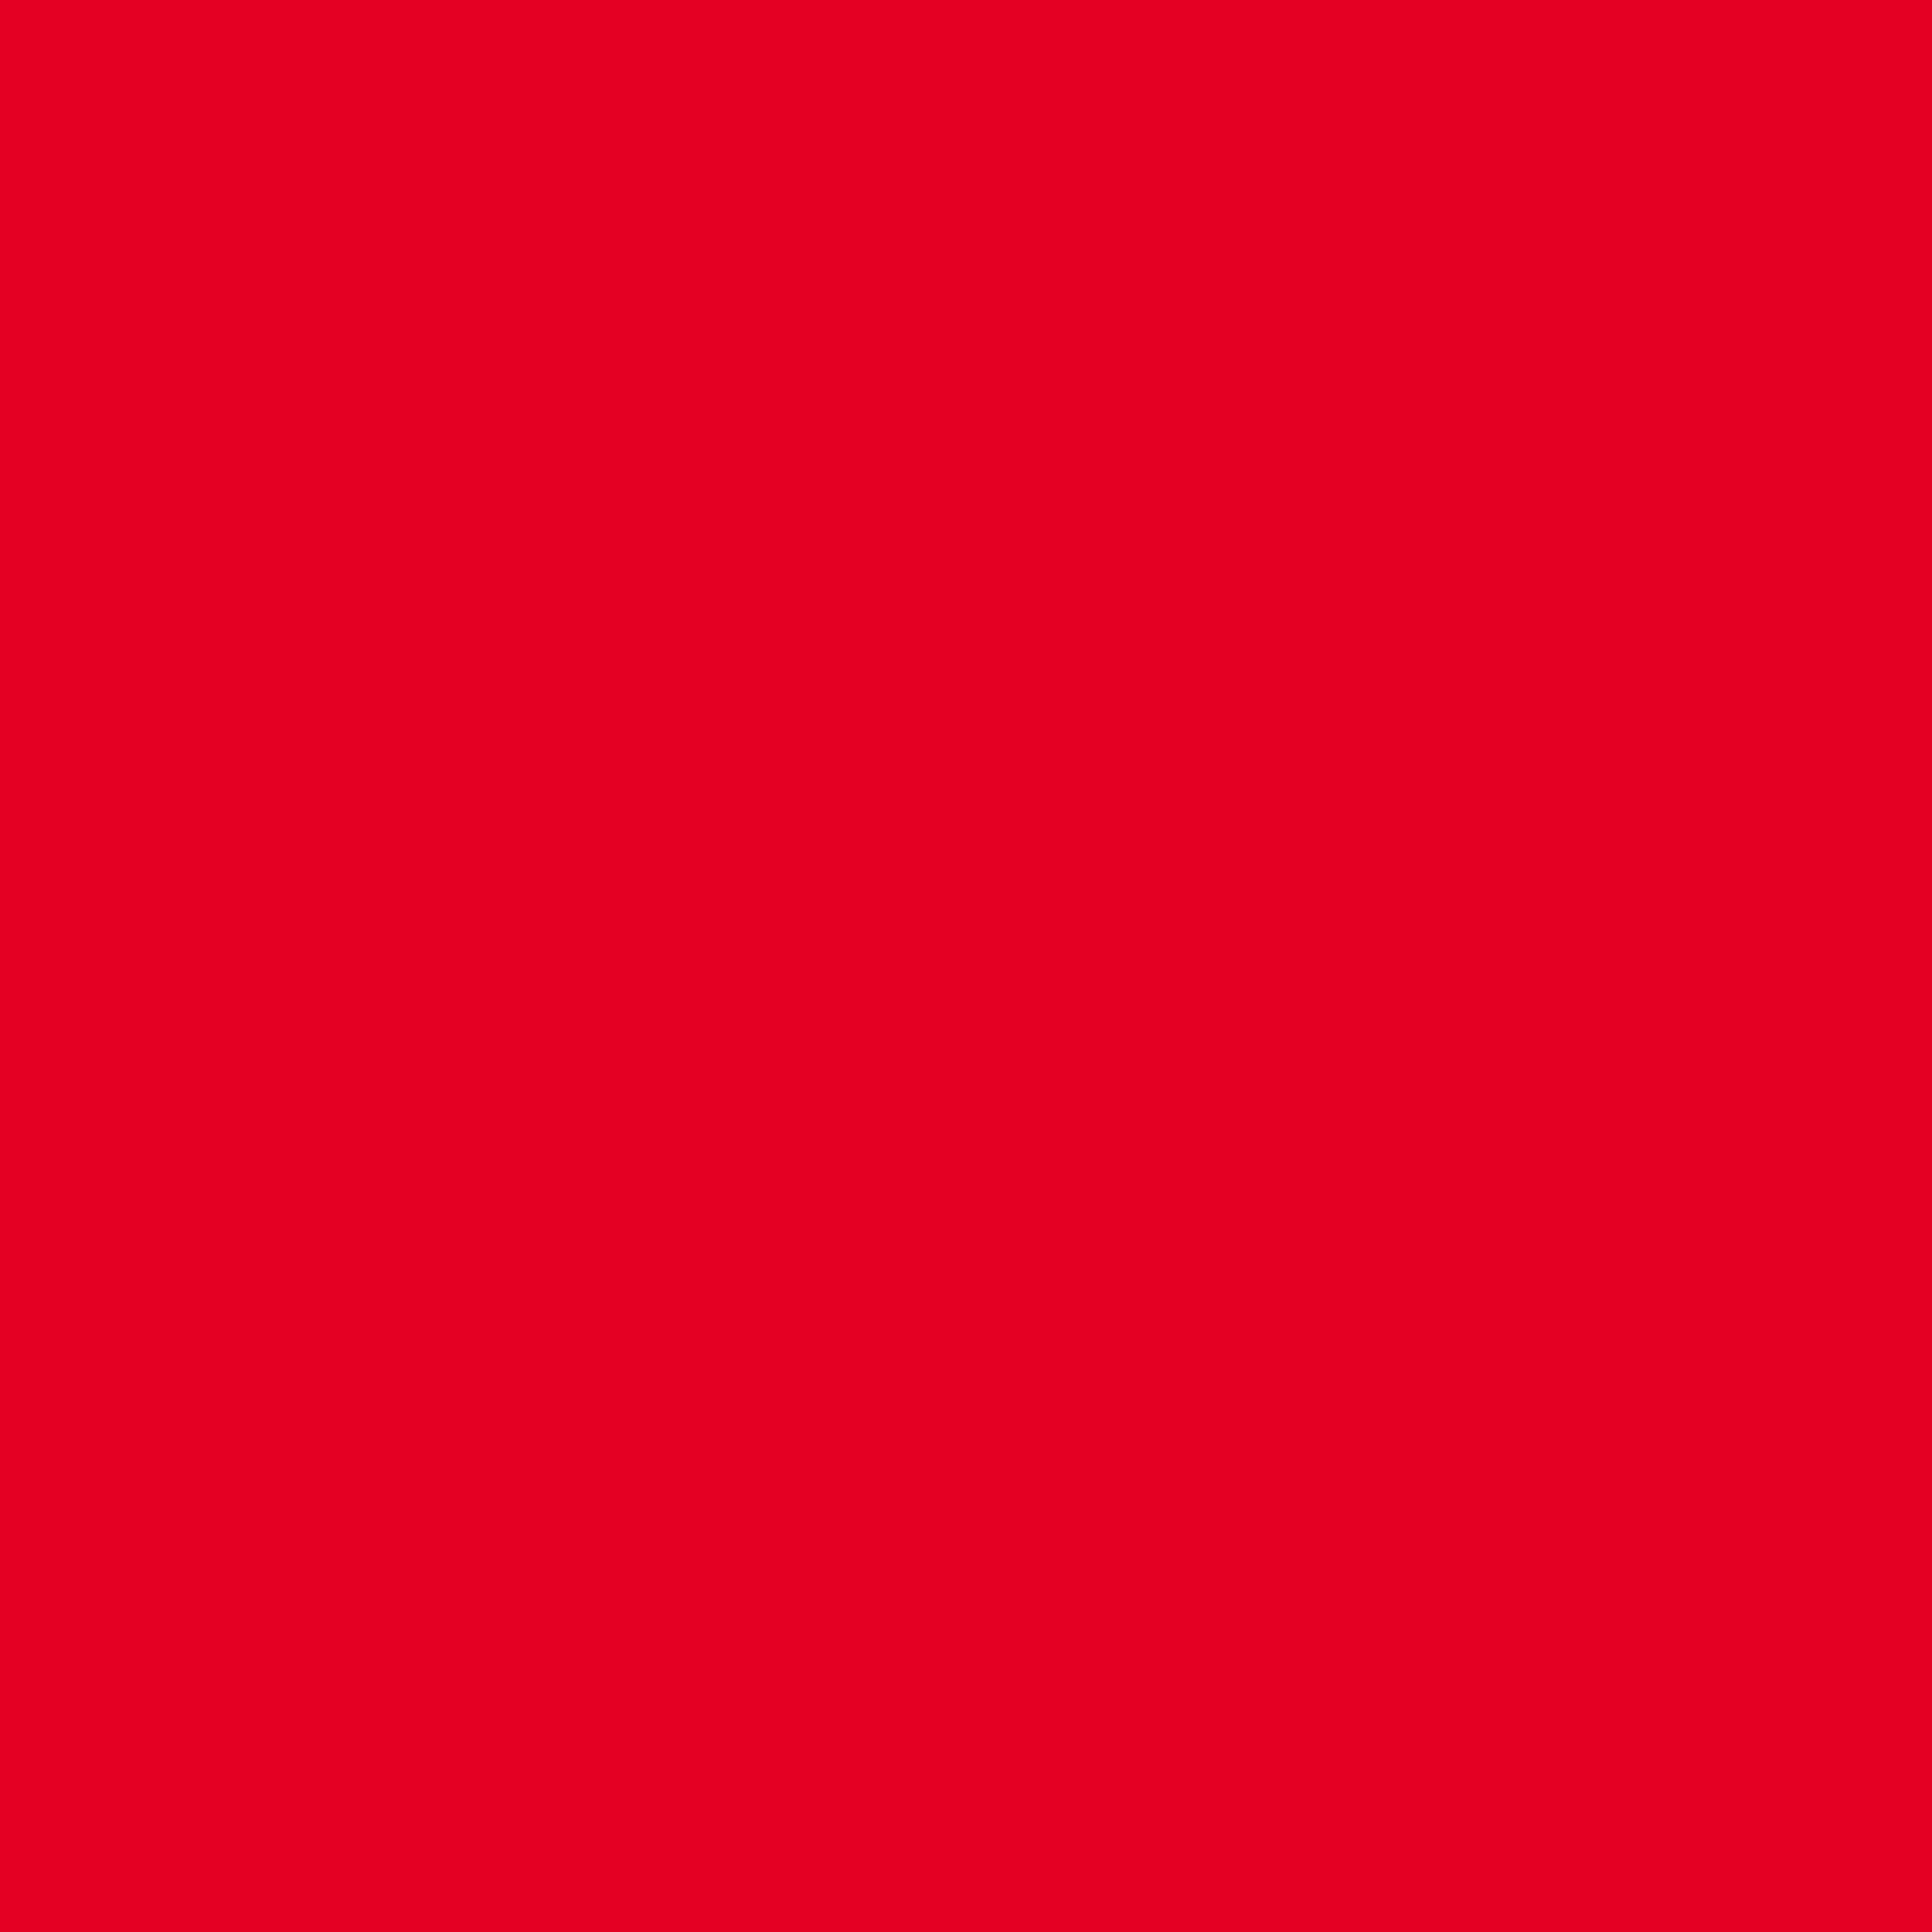 2048x2048 Cadmium Red Solid Color Background